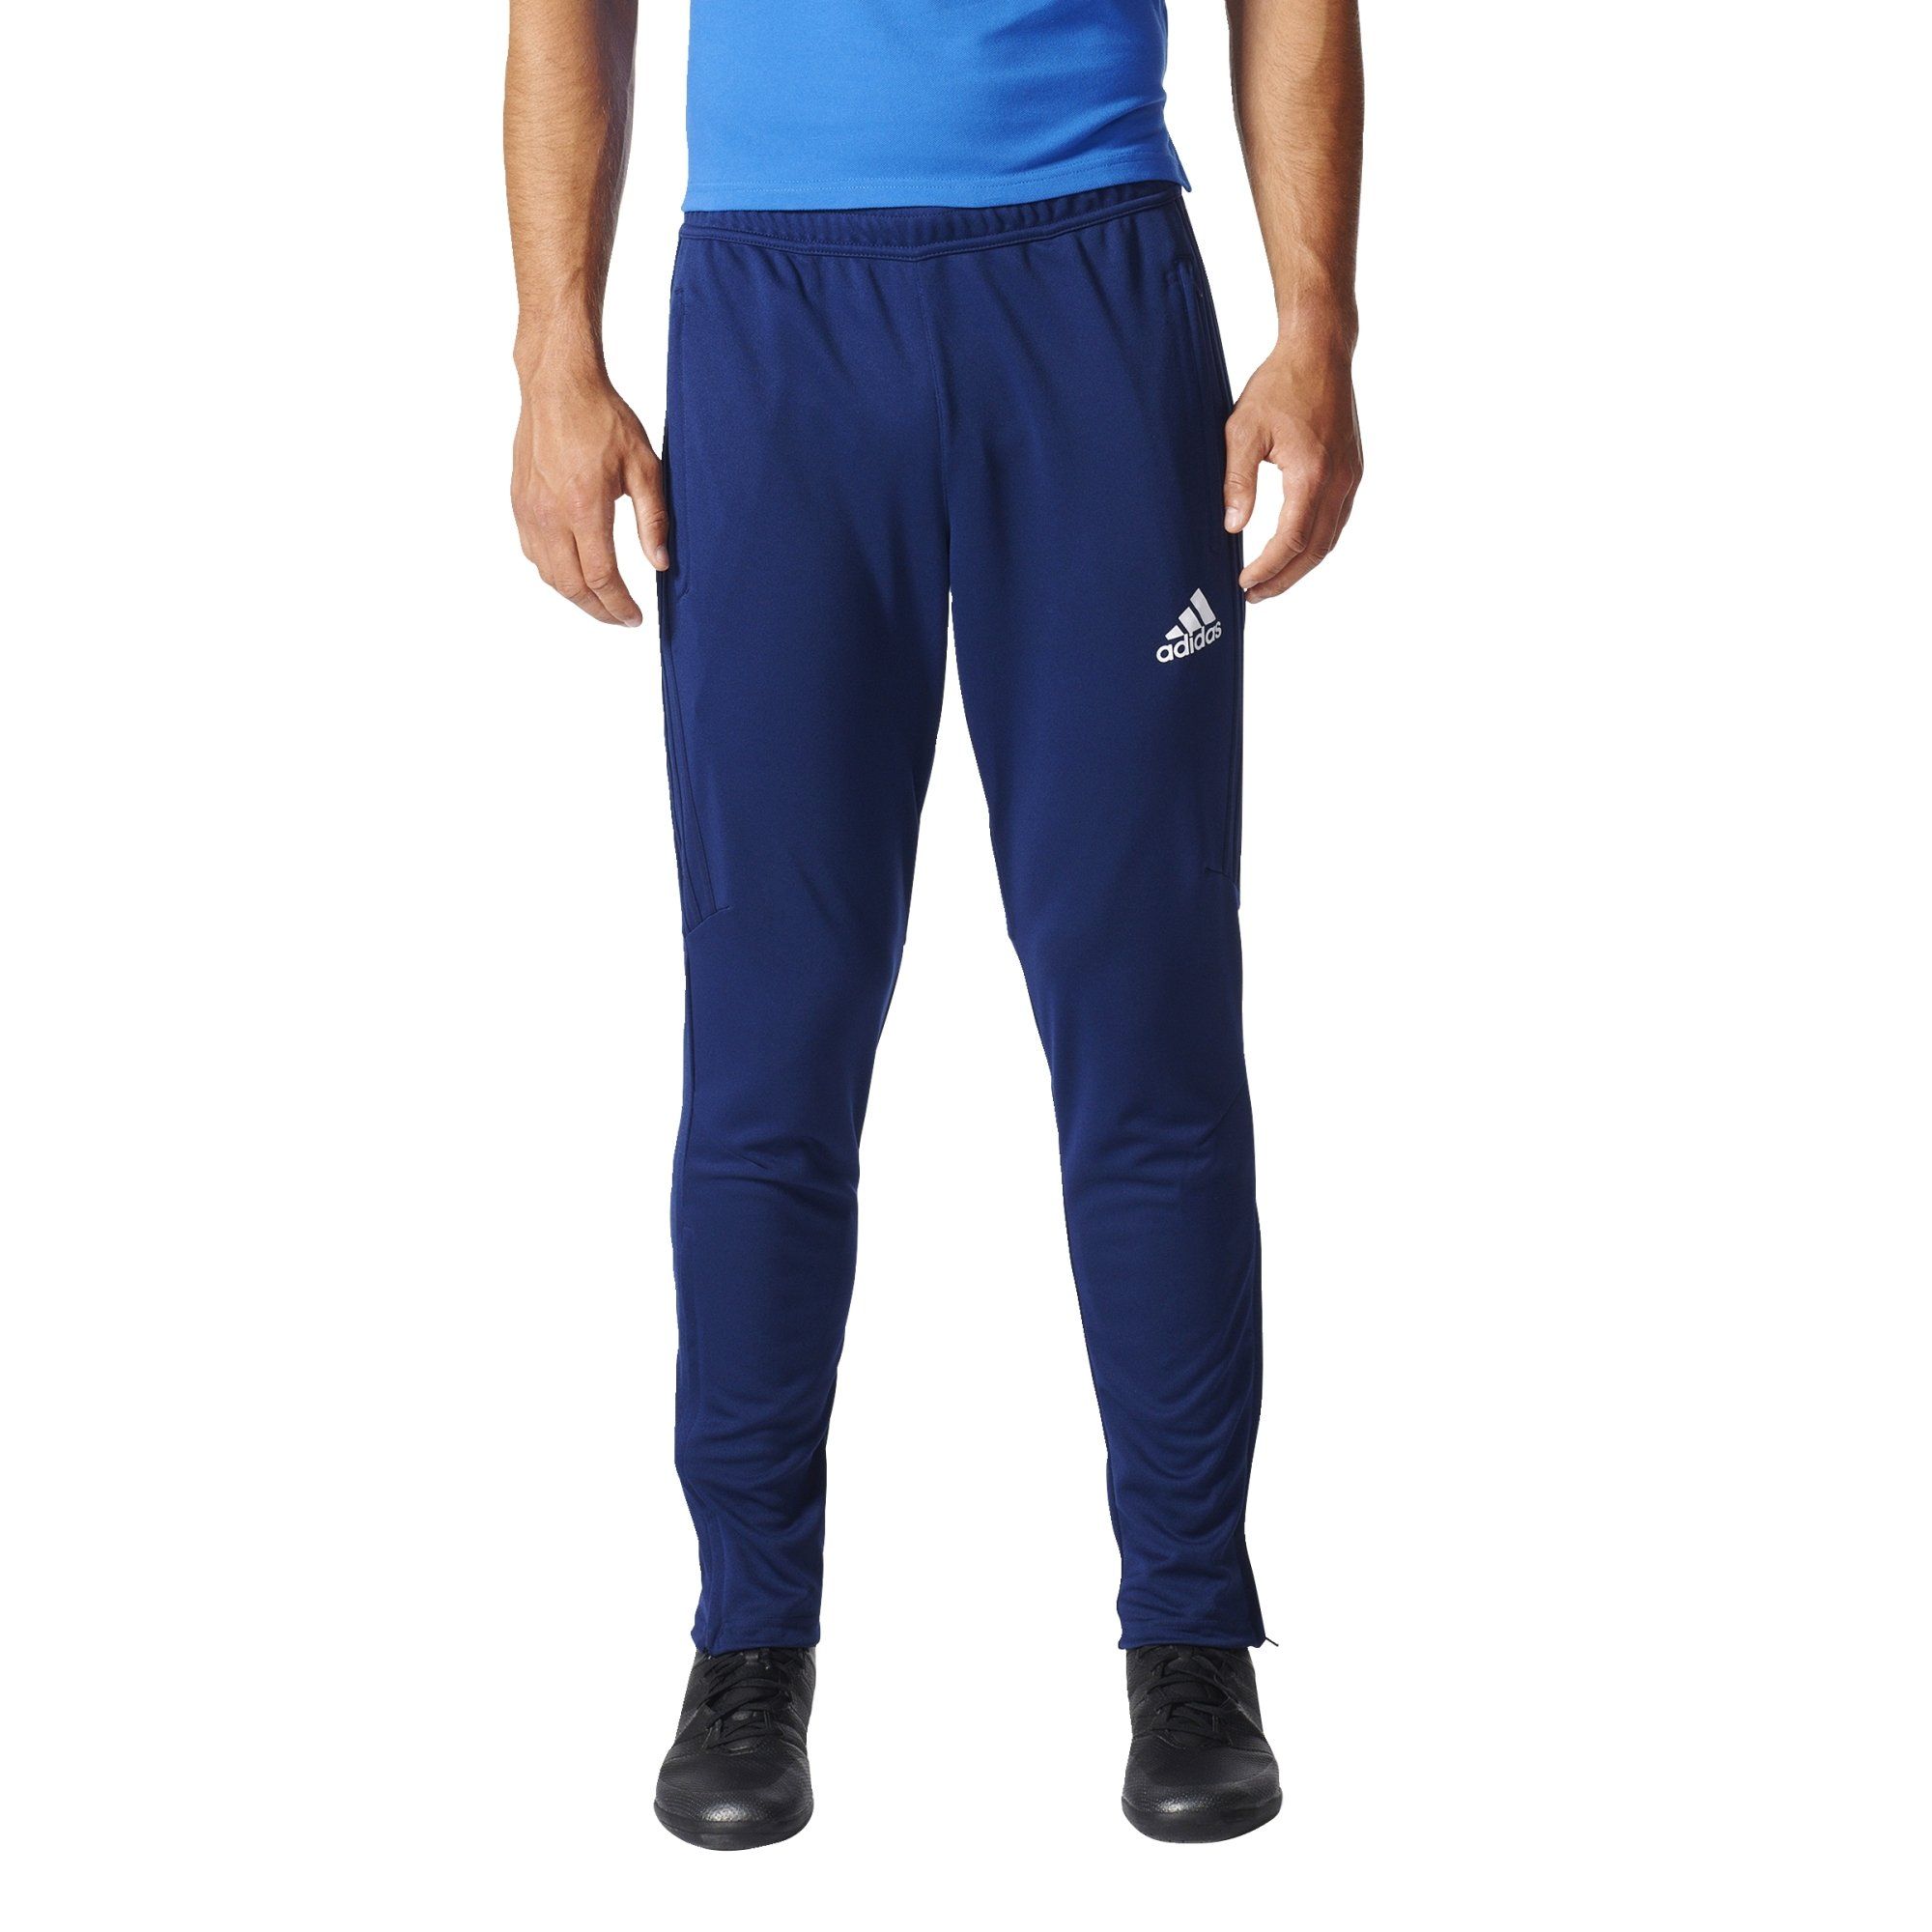 adidas Men's Soccer Tiro 17 Pants, XX-Large, Dark Blue/White by adidas